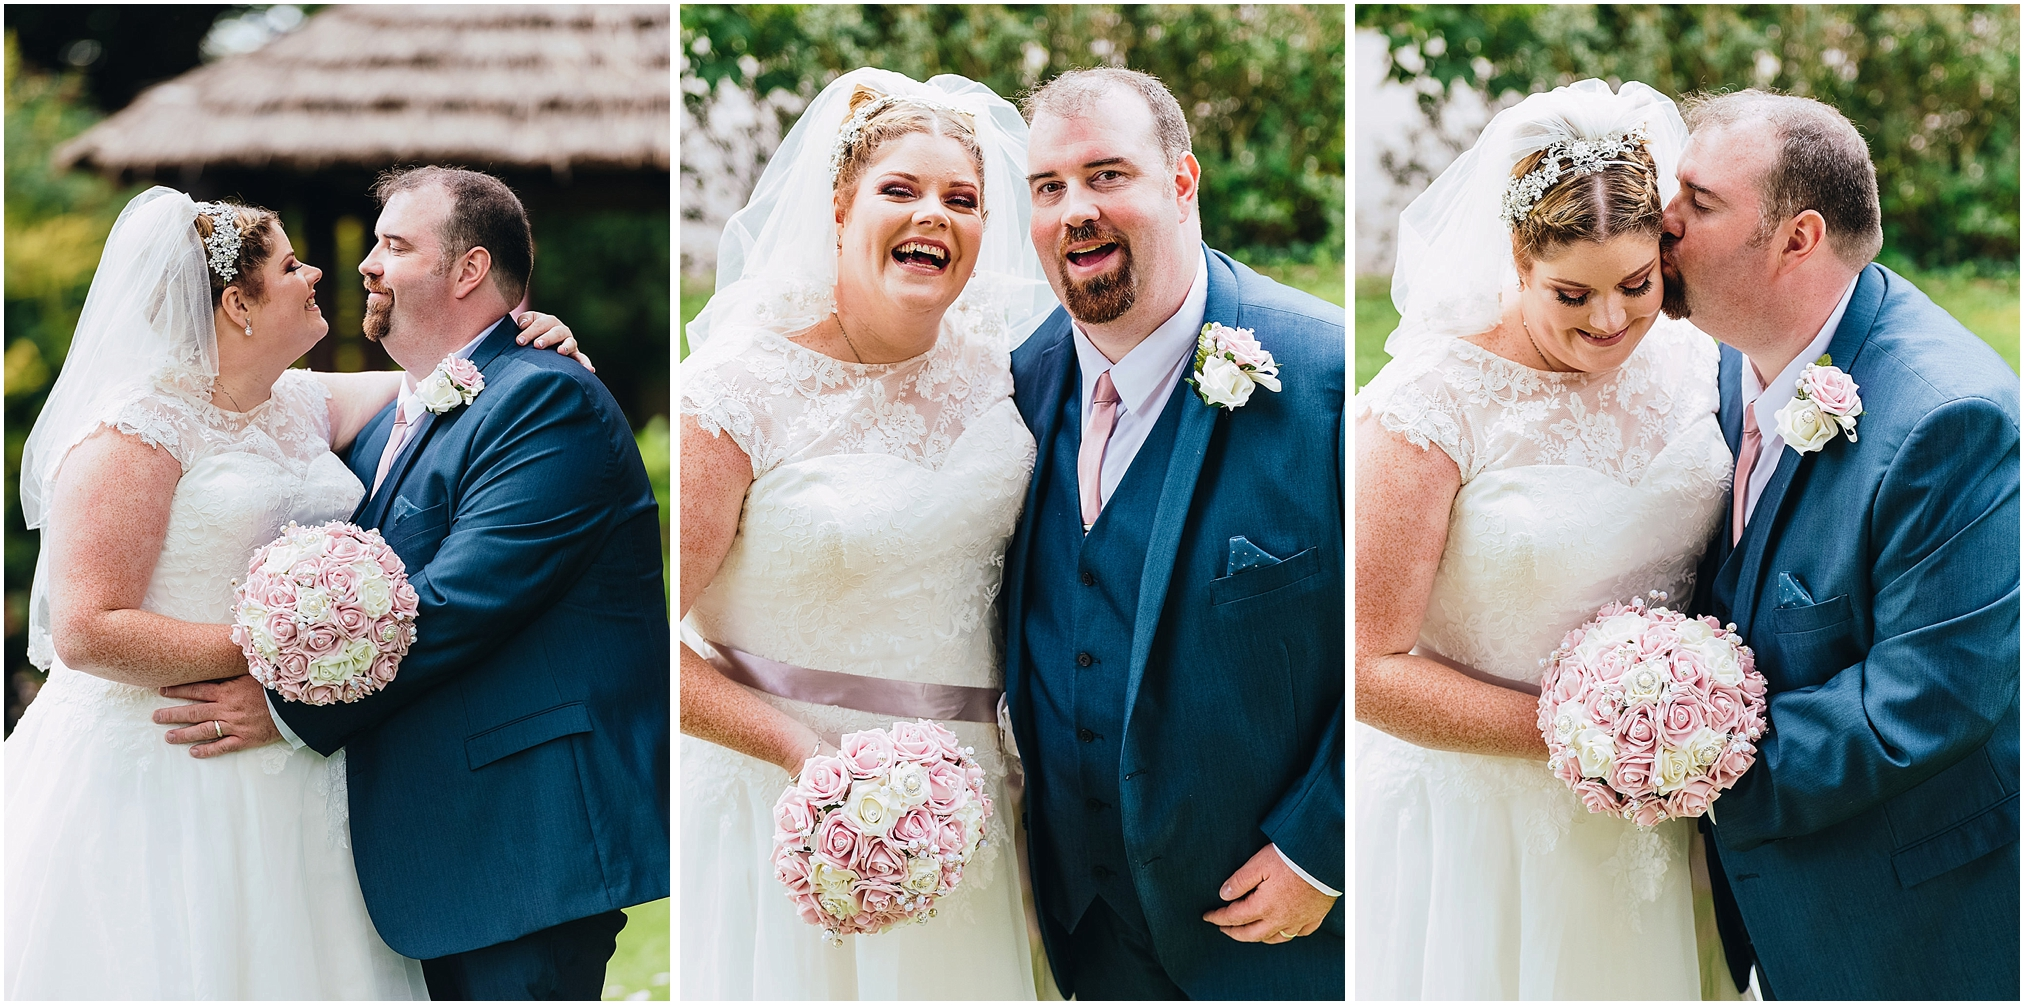 Staffordshire_wedding_photographer-85.jpg